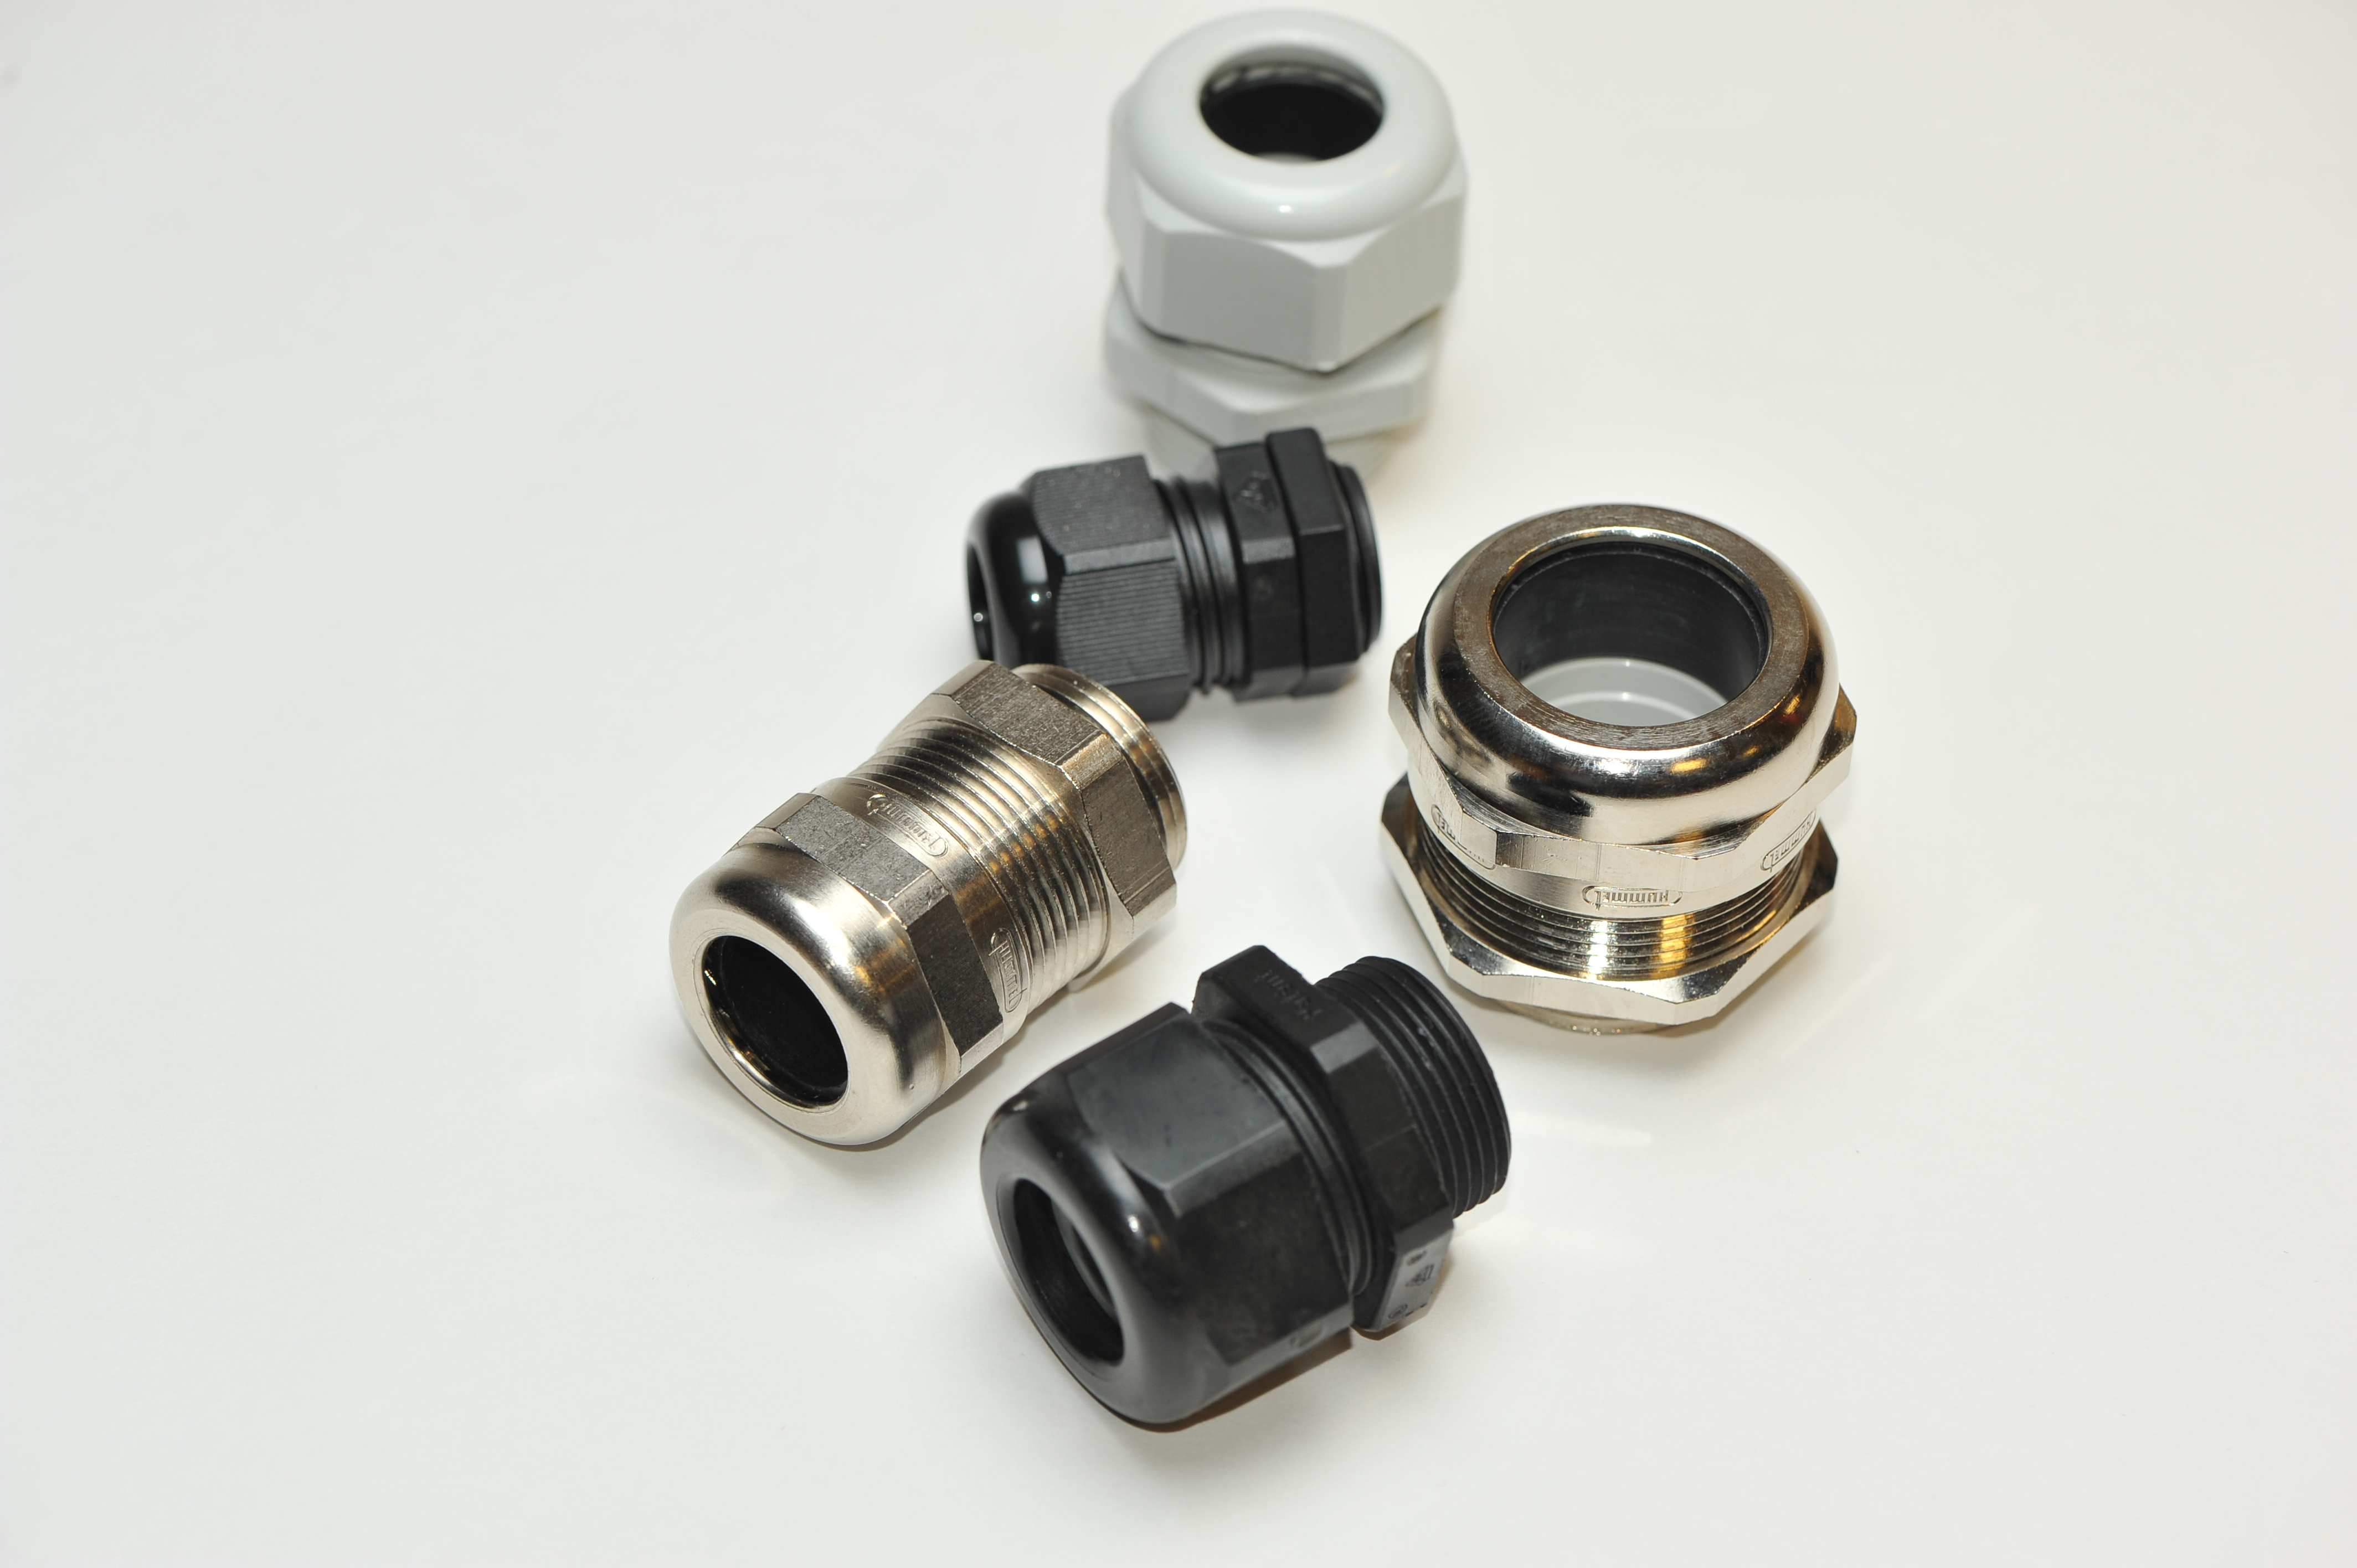 More Choice Of Cable Glands From Single Source